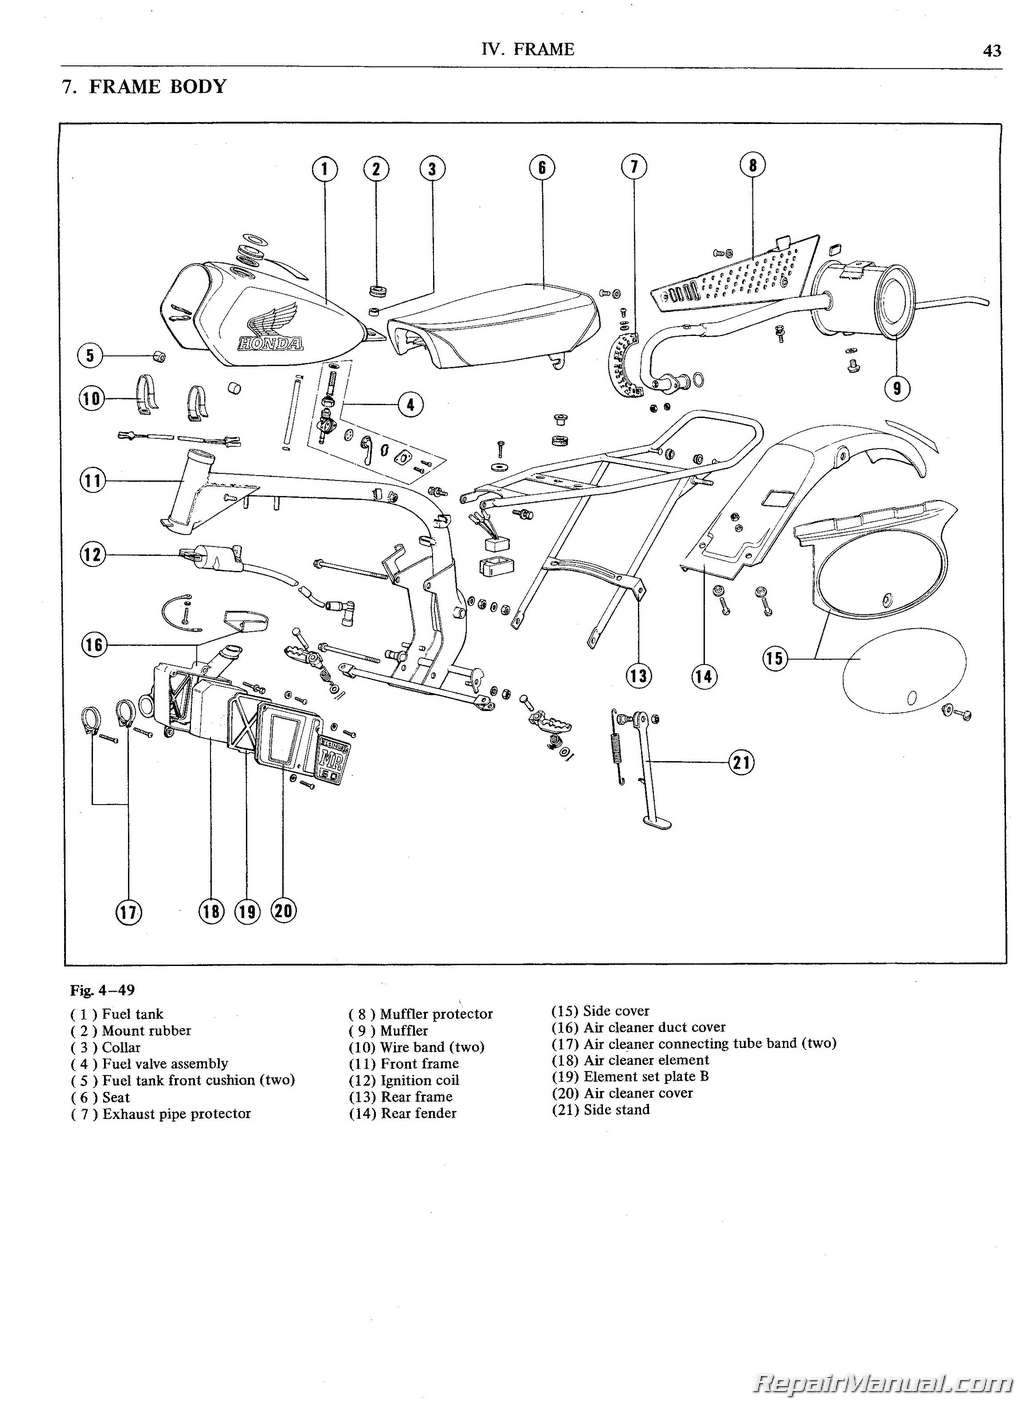 Honda Mr50 Wiring Diagram Data Dirt Bike 50cc Wire Motorcycle Service Manual And Parts 1974 1975